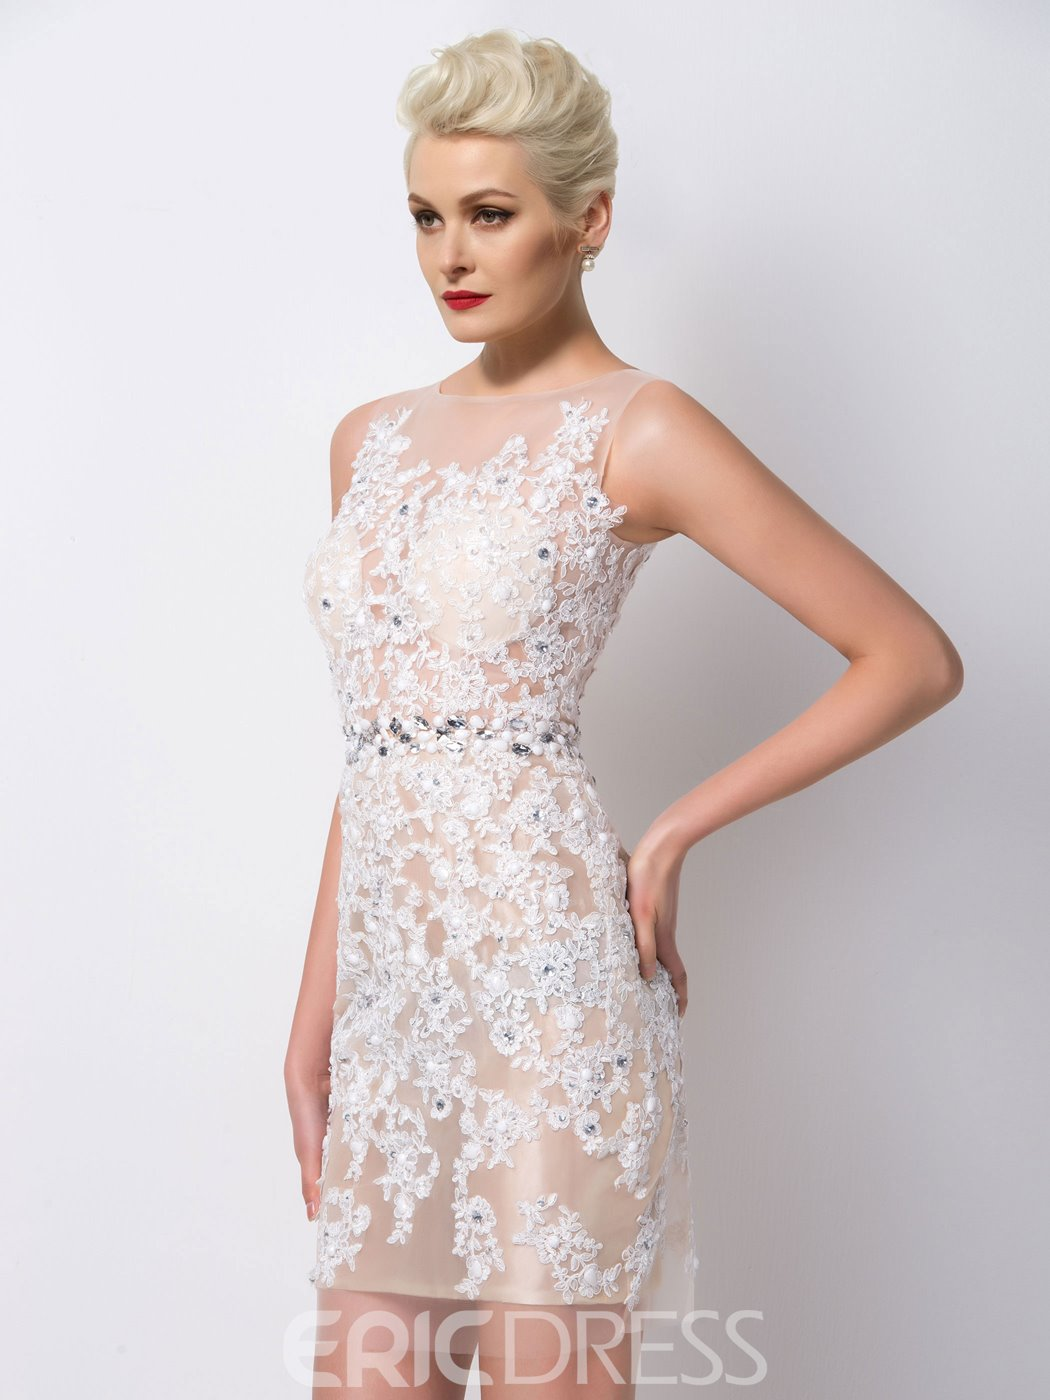 Ericdress Glamorous Appliques Beaded Sheath Cocktail Dress